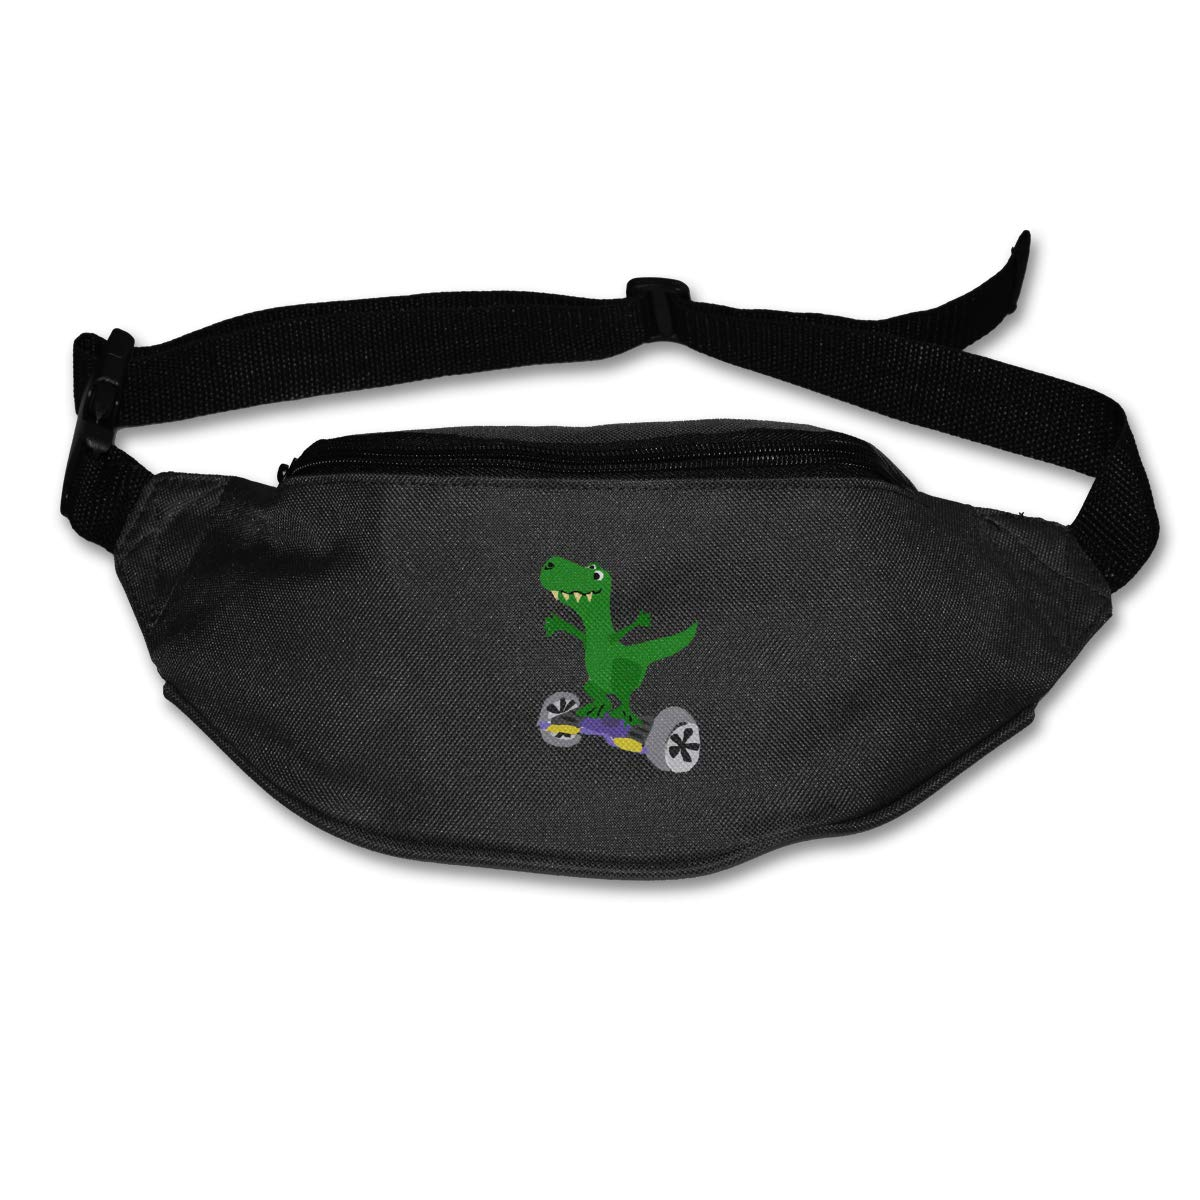 Dinosaur On Hoverboard Sport Waist Packs Fanny Pack Adjustable For Travel